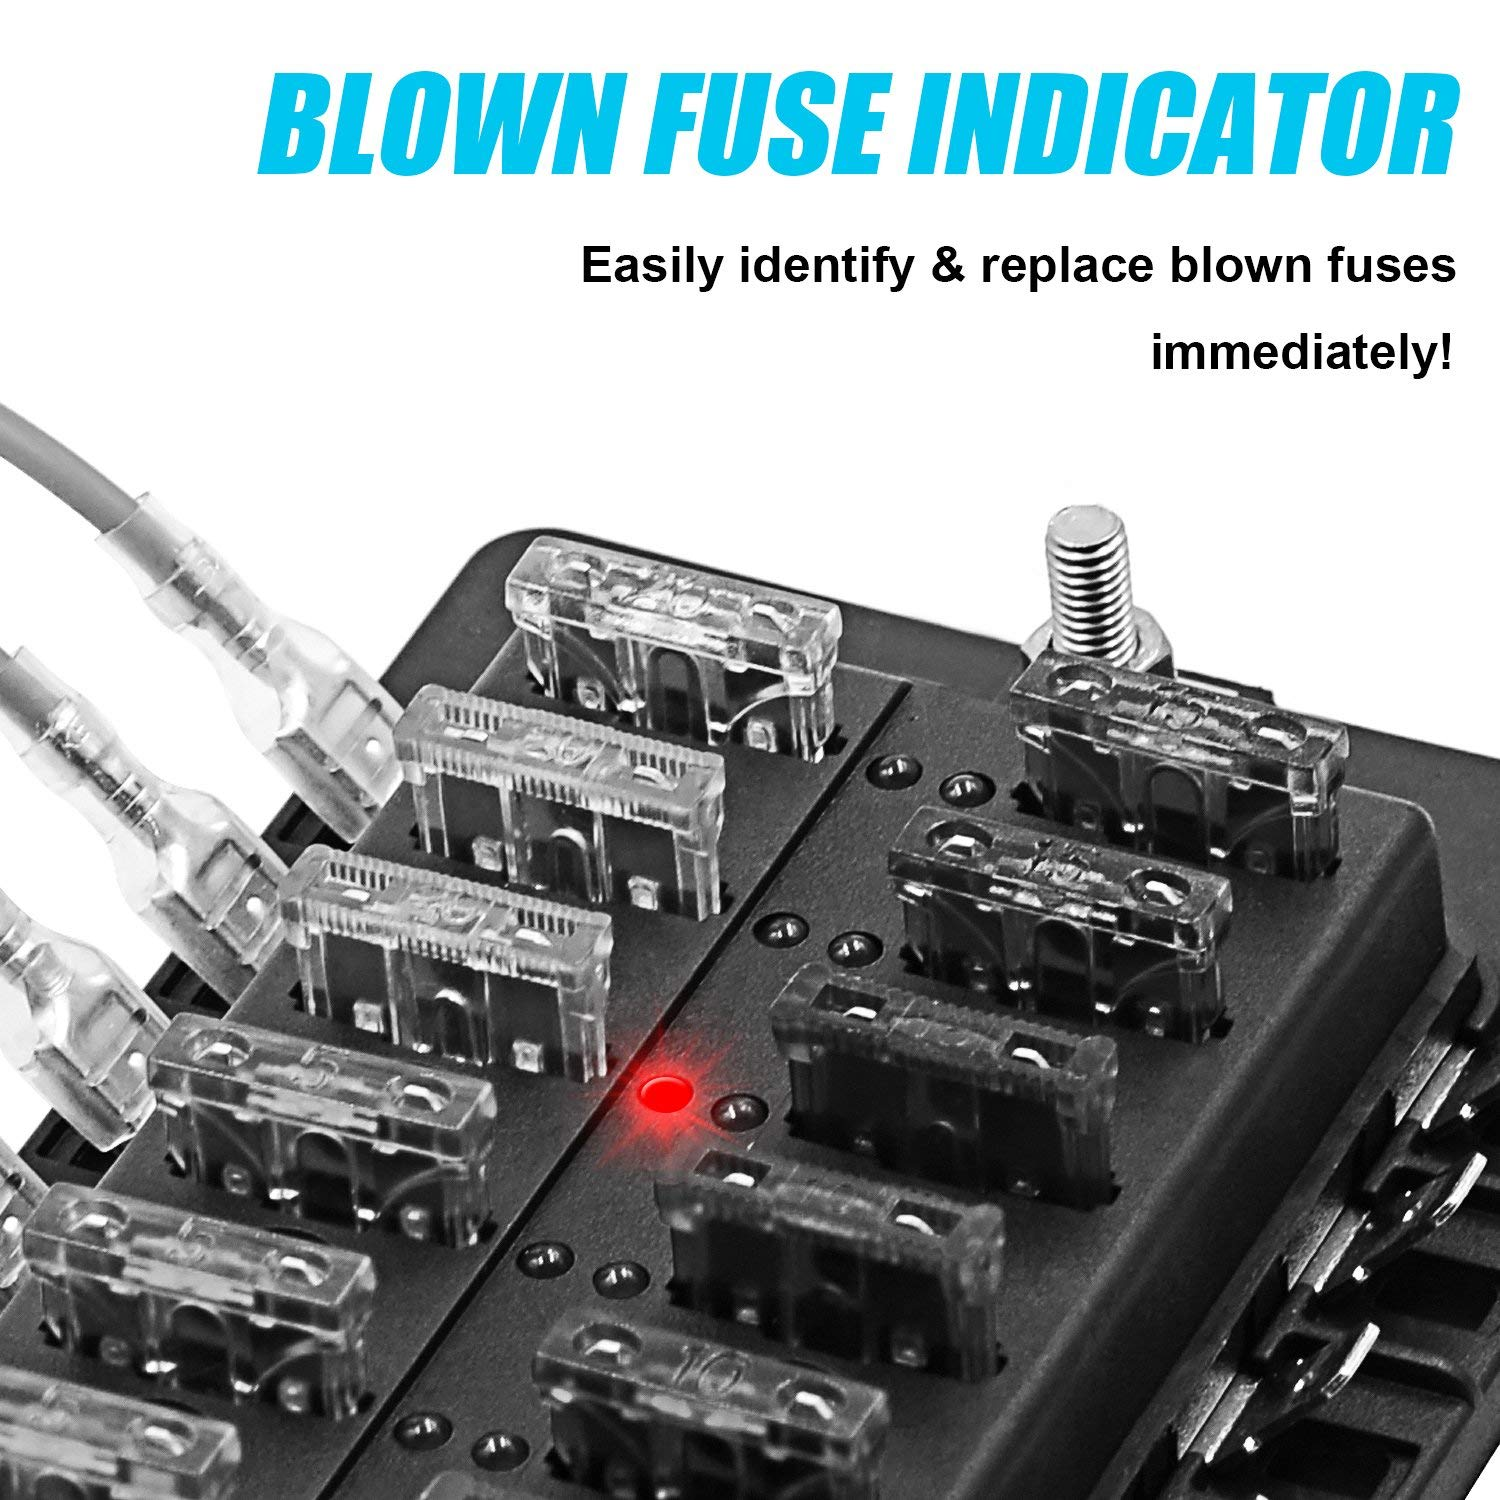 TURN RAISE 8-Way Blade Fuse Box Fuse Box Block with LED Warning Indicator /& Waterproof Cover for Car Boat Marine RV Truck DC 12-24